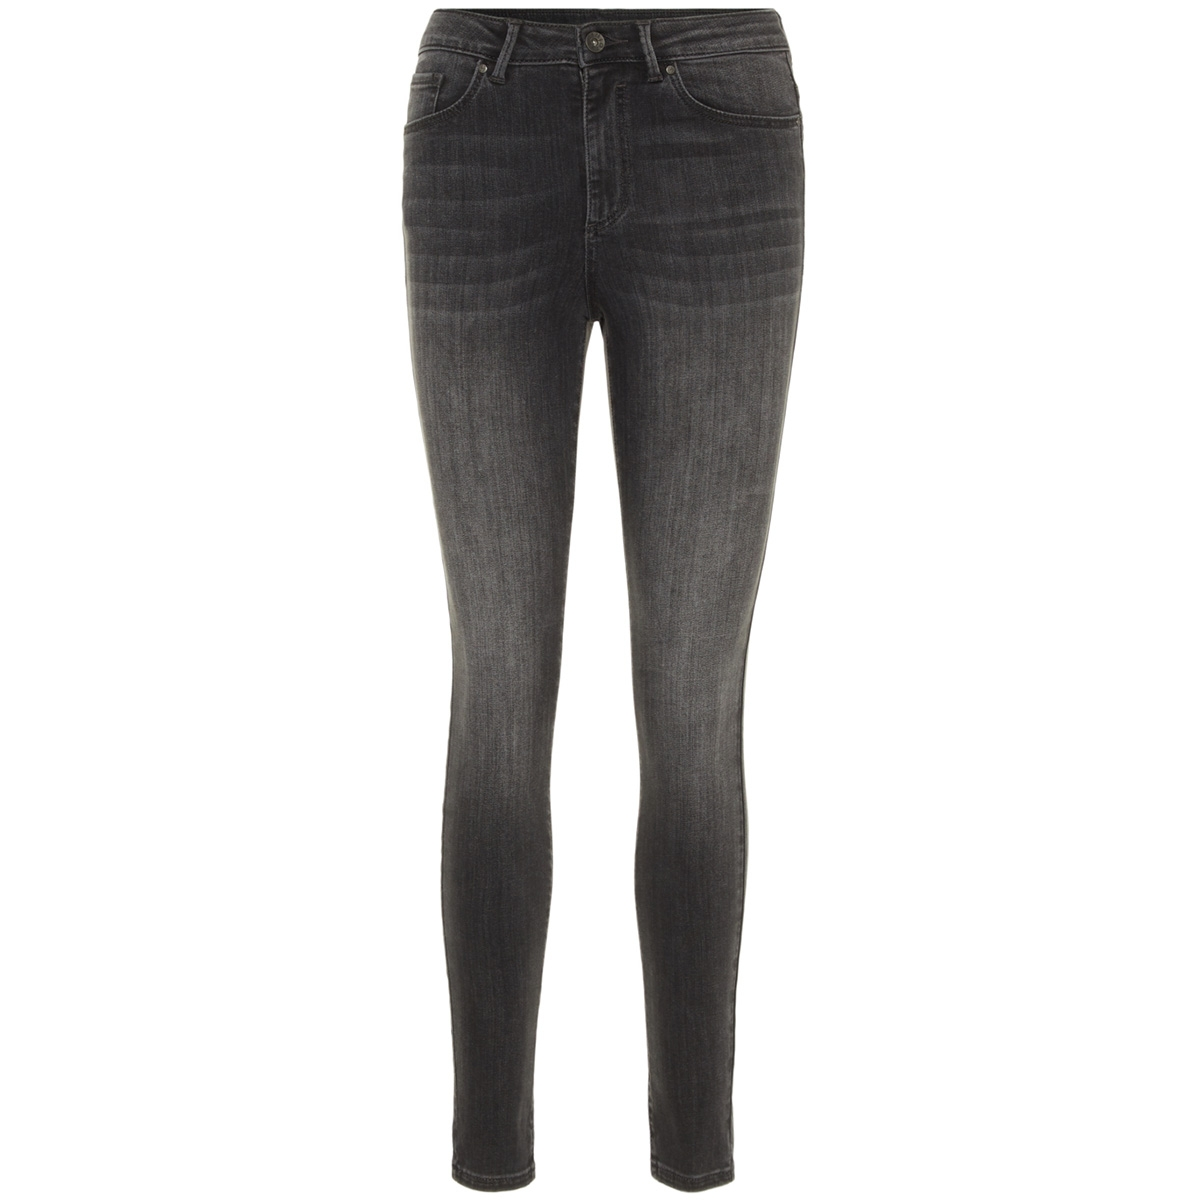 vmsophia hr skinny jeans am203 noos 10201804 vero moda jeans dark gray denim